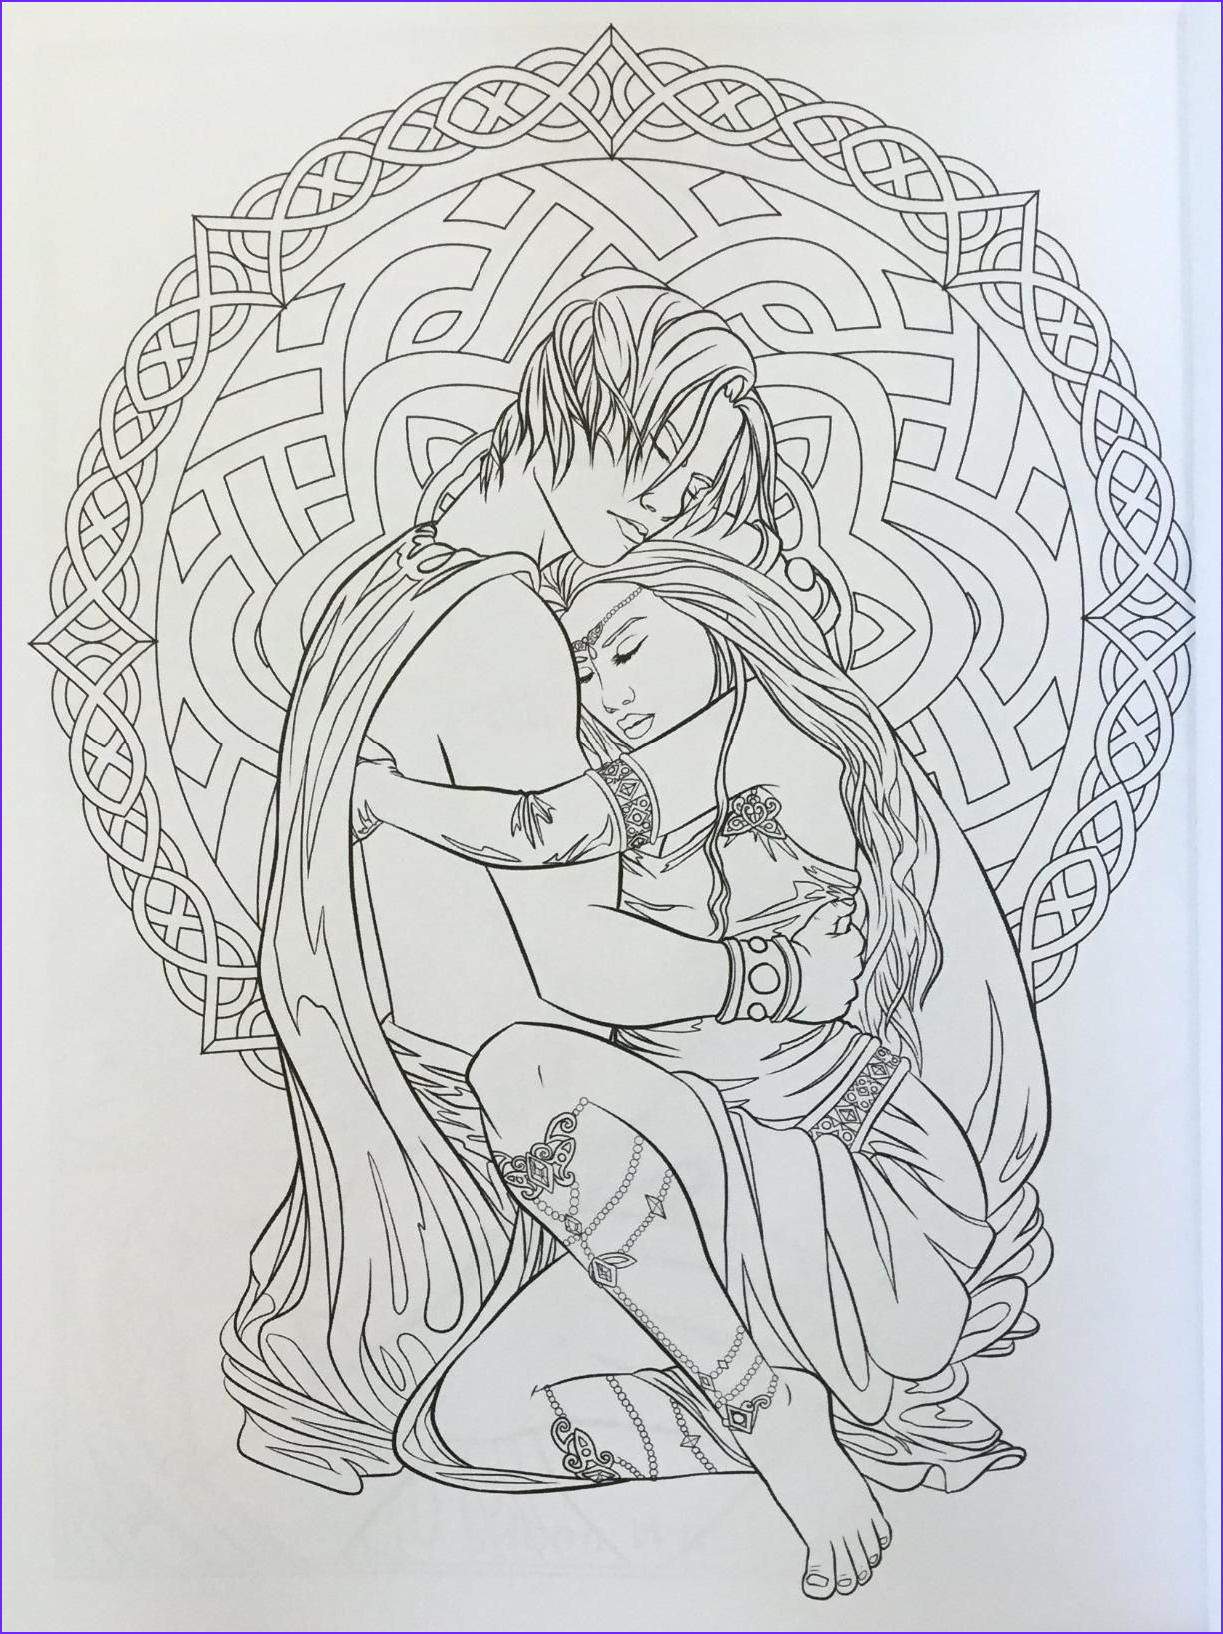 Fantasy Coloring Page for Adults Luxury Photos Gothic Dark Fantasy Coloring Book Fantasy Art Coloring